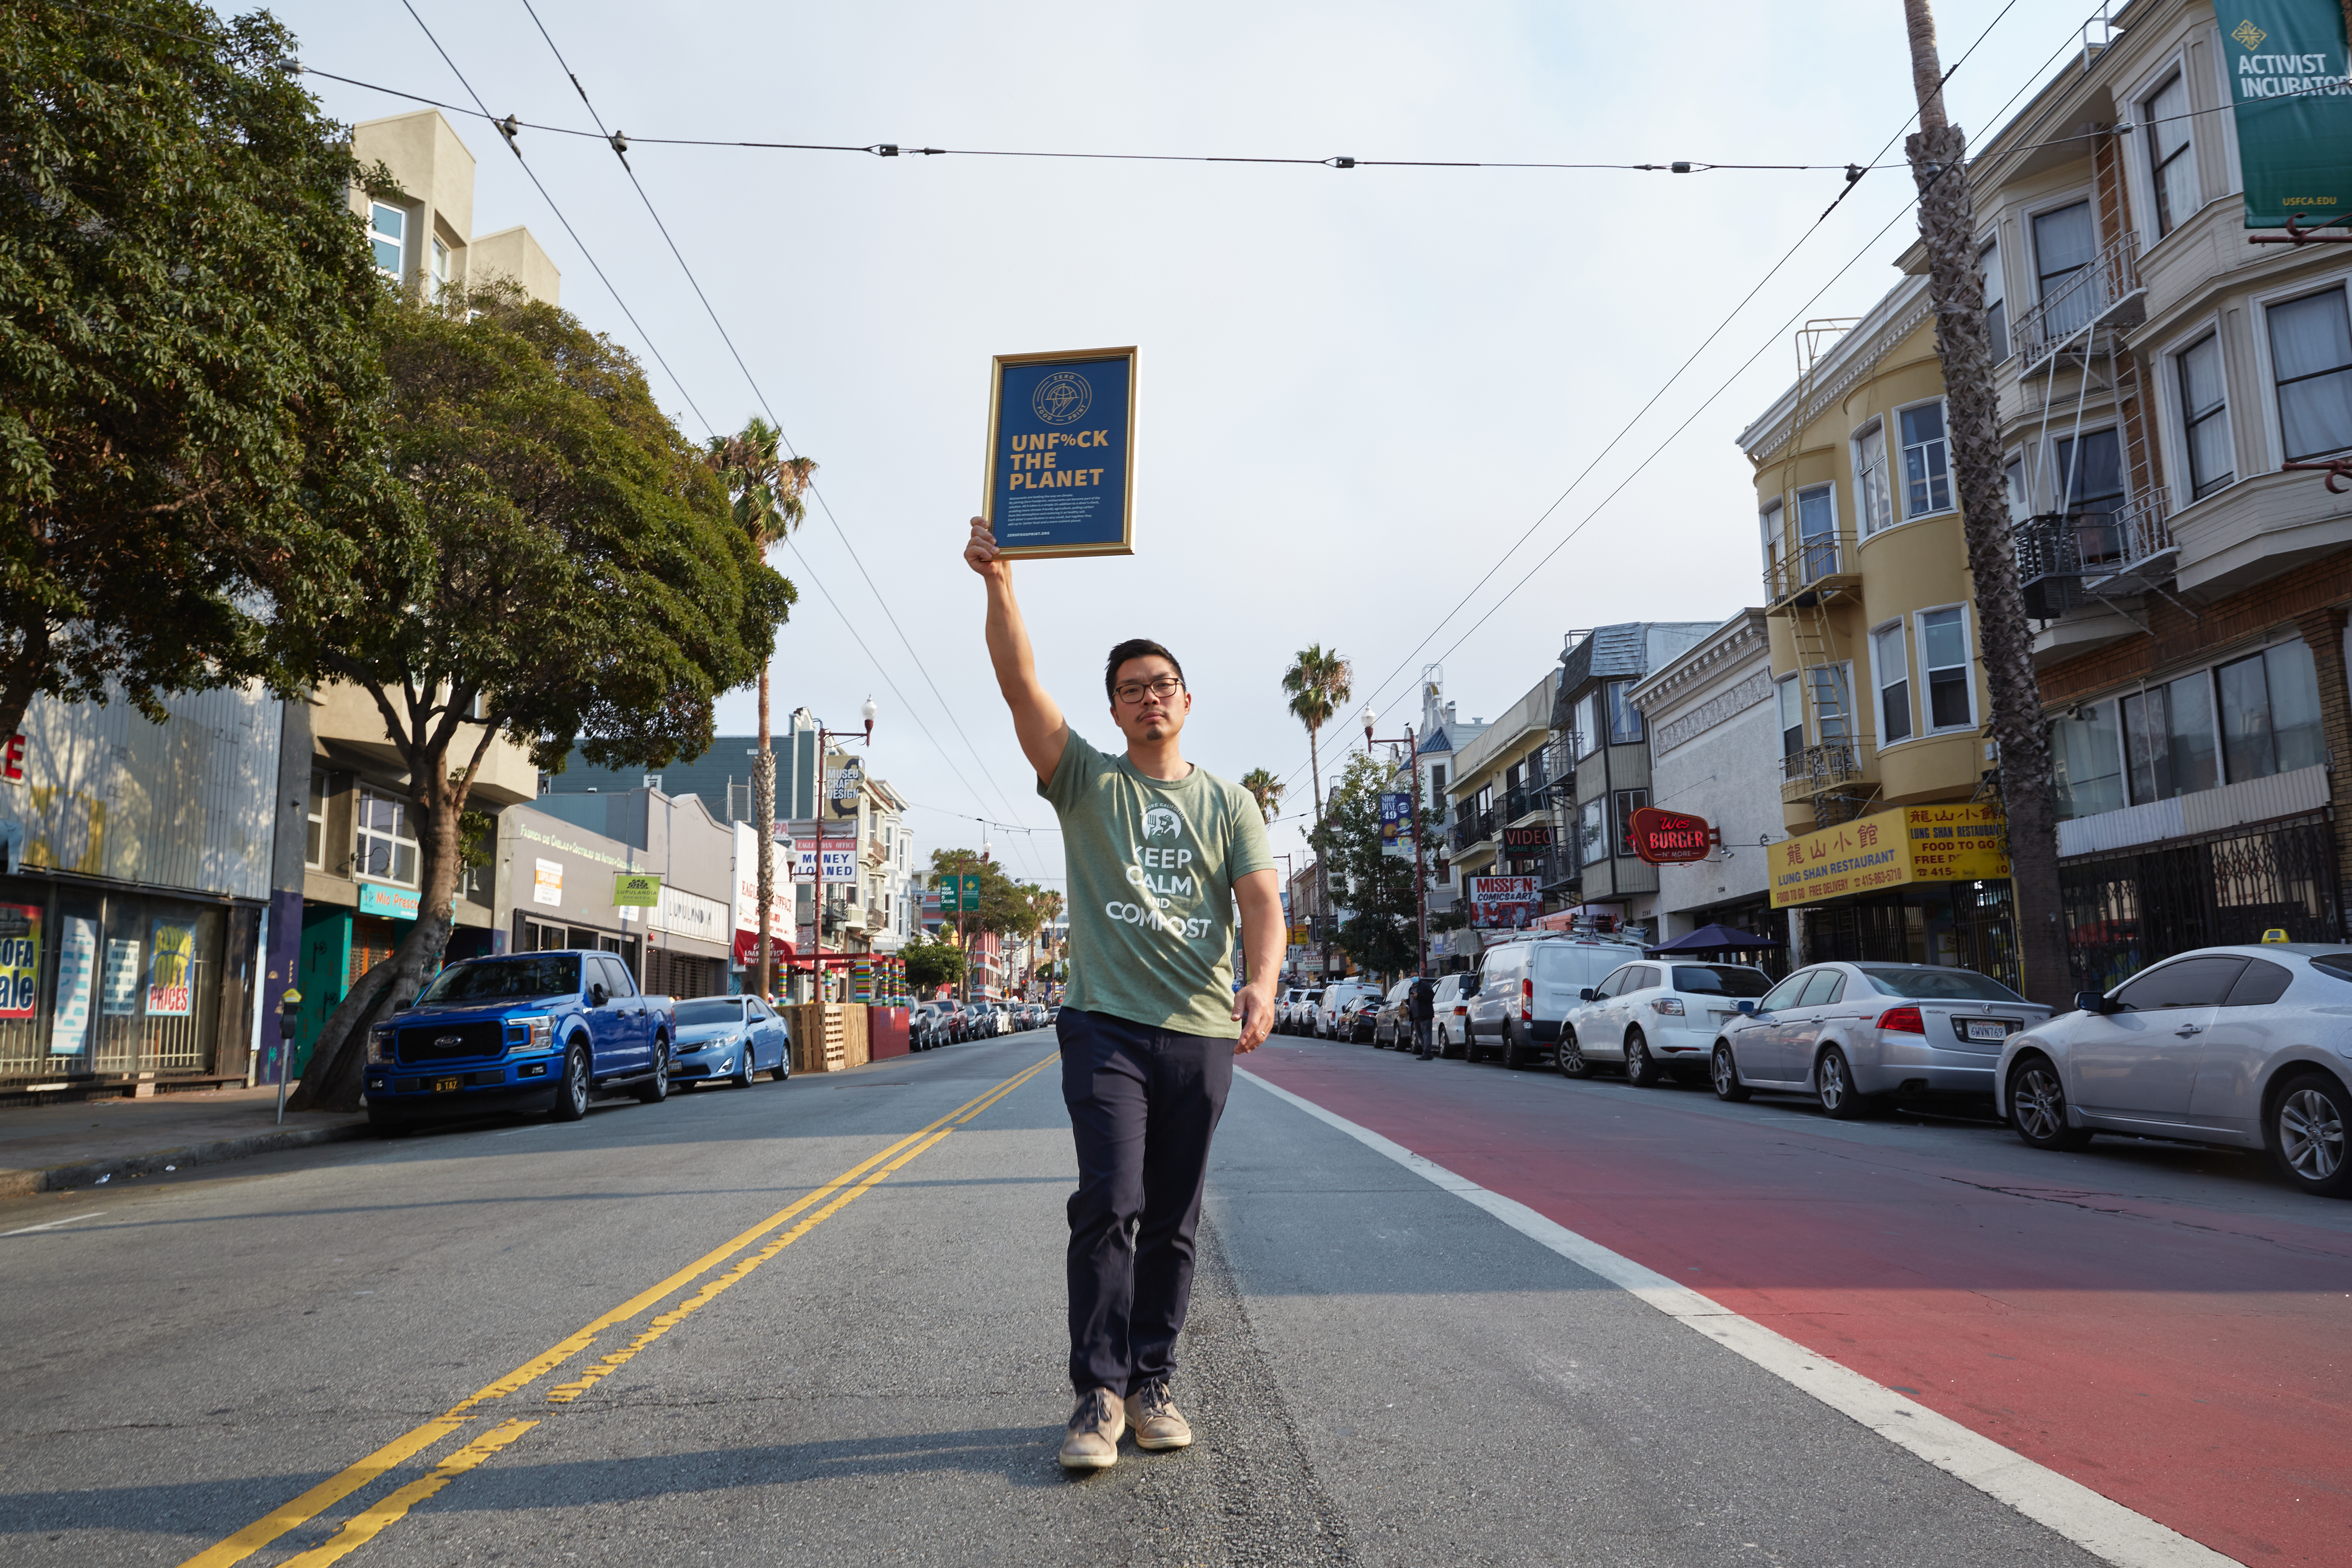 """Man wearing t-shirt that says """"Keep Calm and Compost"""" holds up a sign that says """"Unfu%k the Planet"""" standing in the middle of the street."""